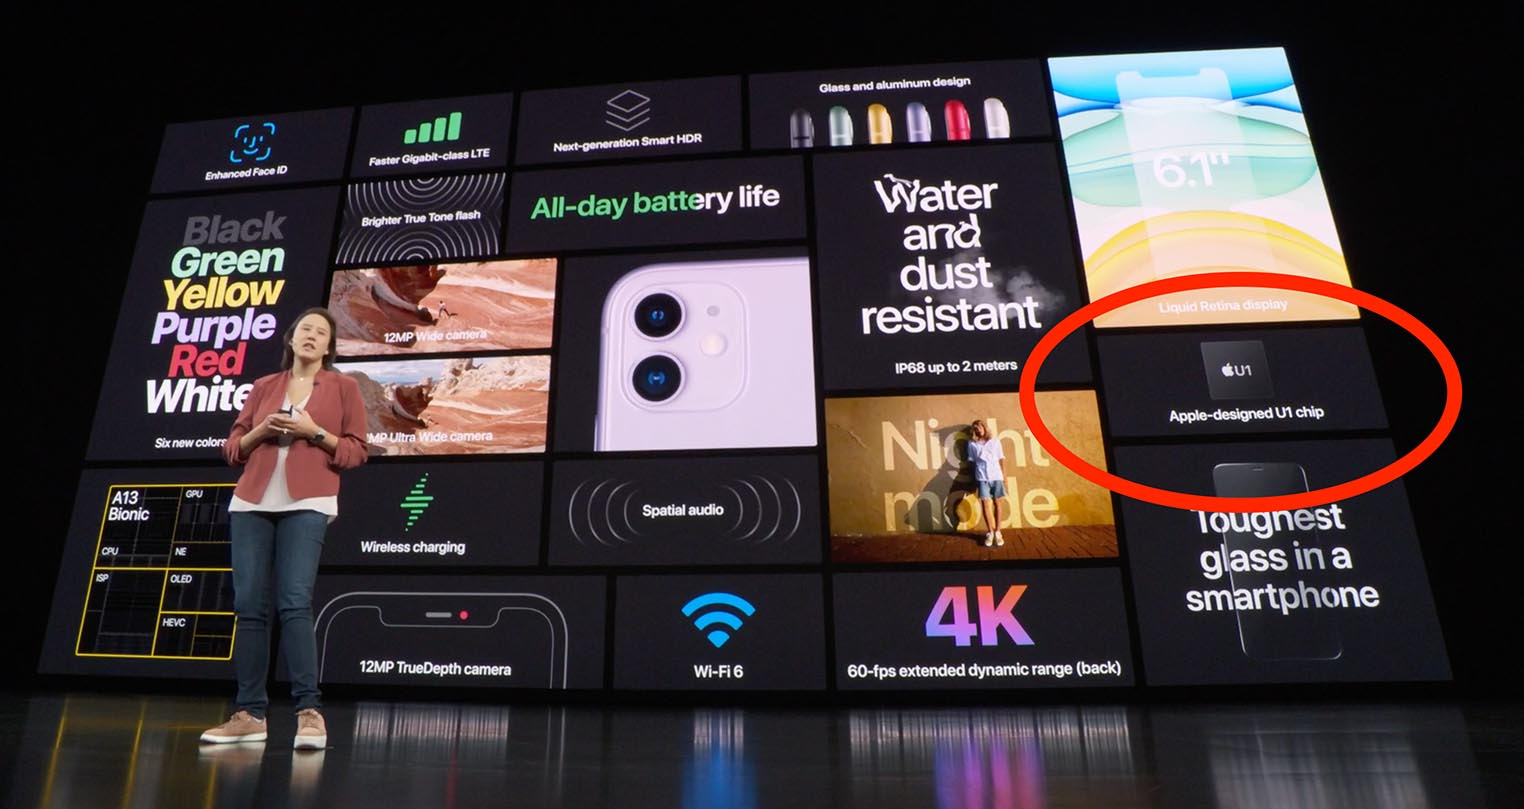 Apple U1 keynote